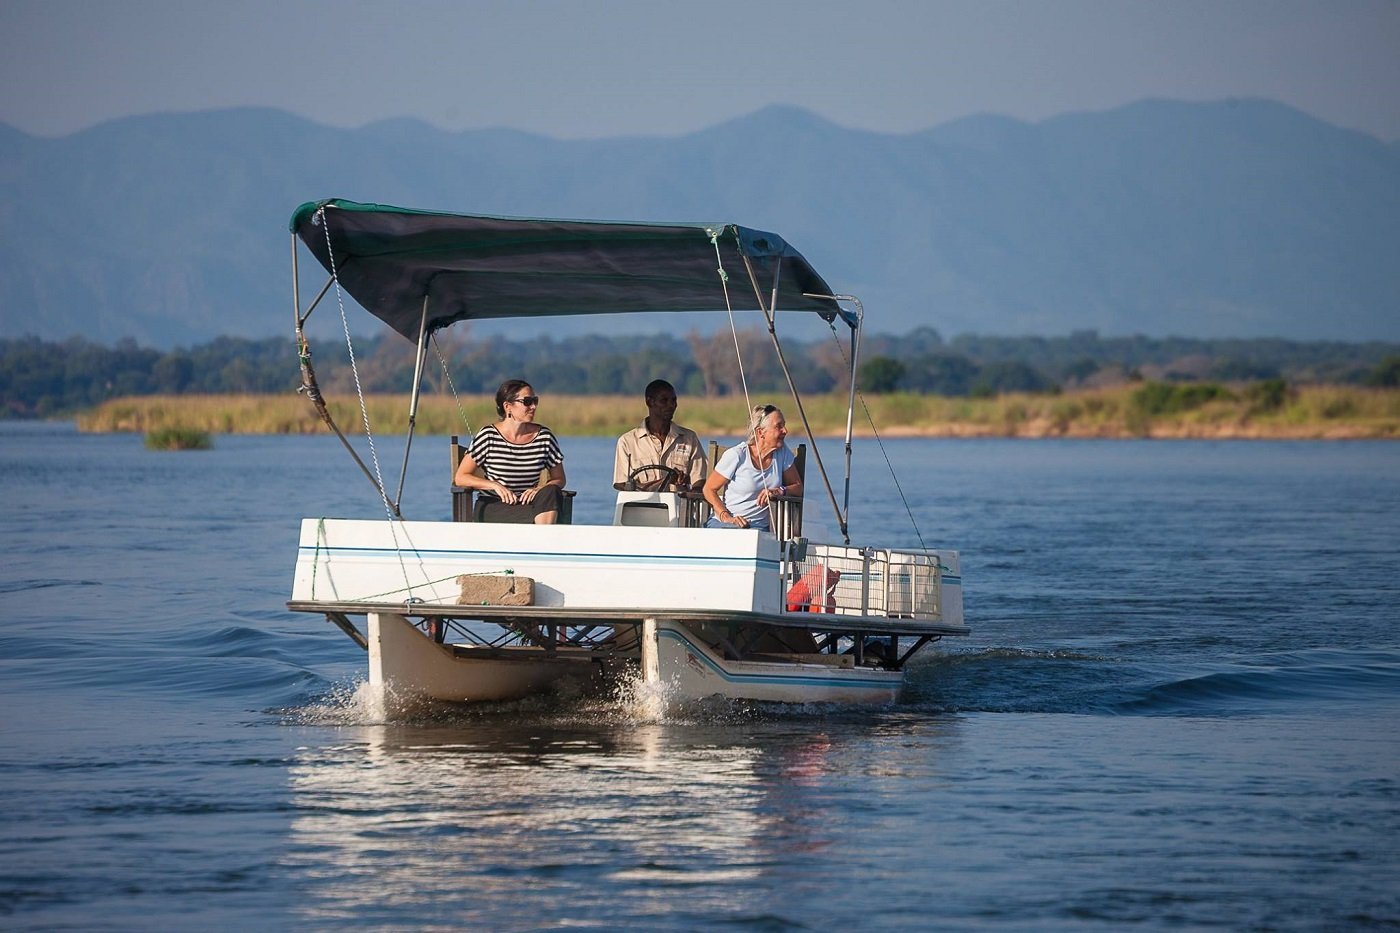 Day 6: Kiambi Safari Lodge – Lower Zambezi National Park